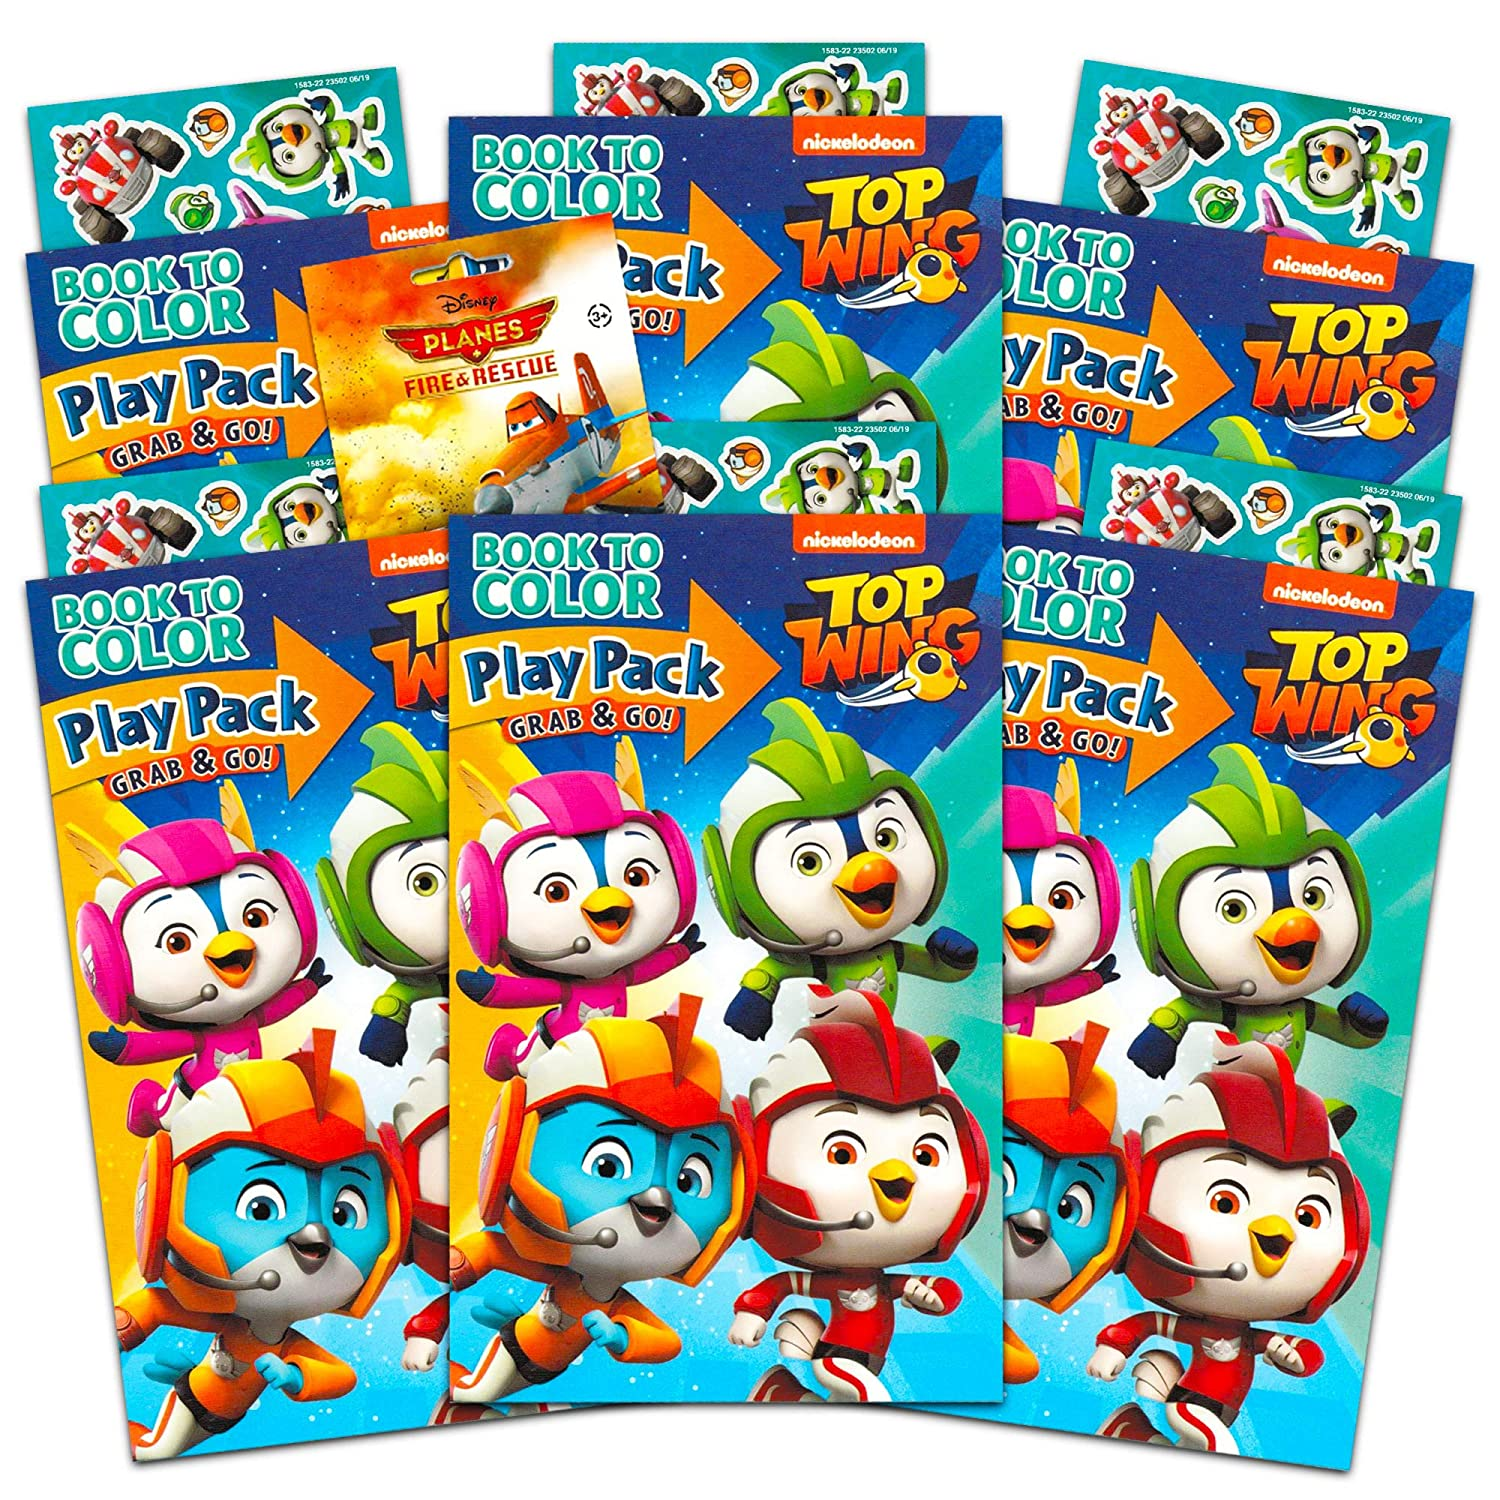 Crayons with Bonus Stickers Nickelodeon Top Wing Party Favors Pack ~ Bundle of 6 Top Wing Play Packs Filled with Stickers Top Wing Party Supplies Coloring Books